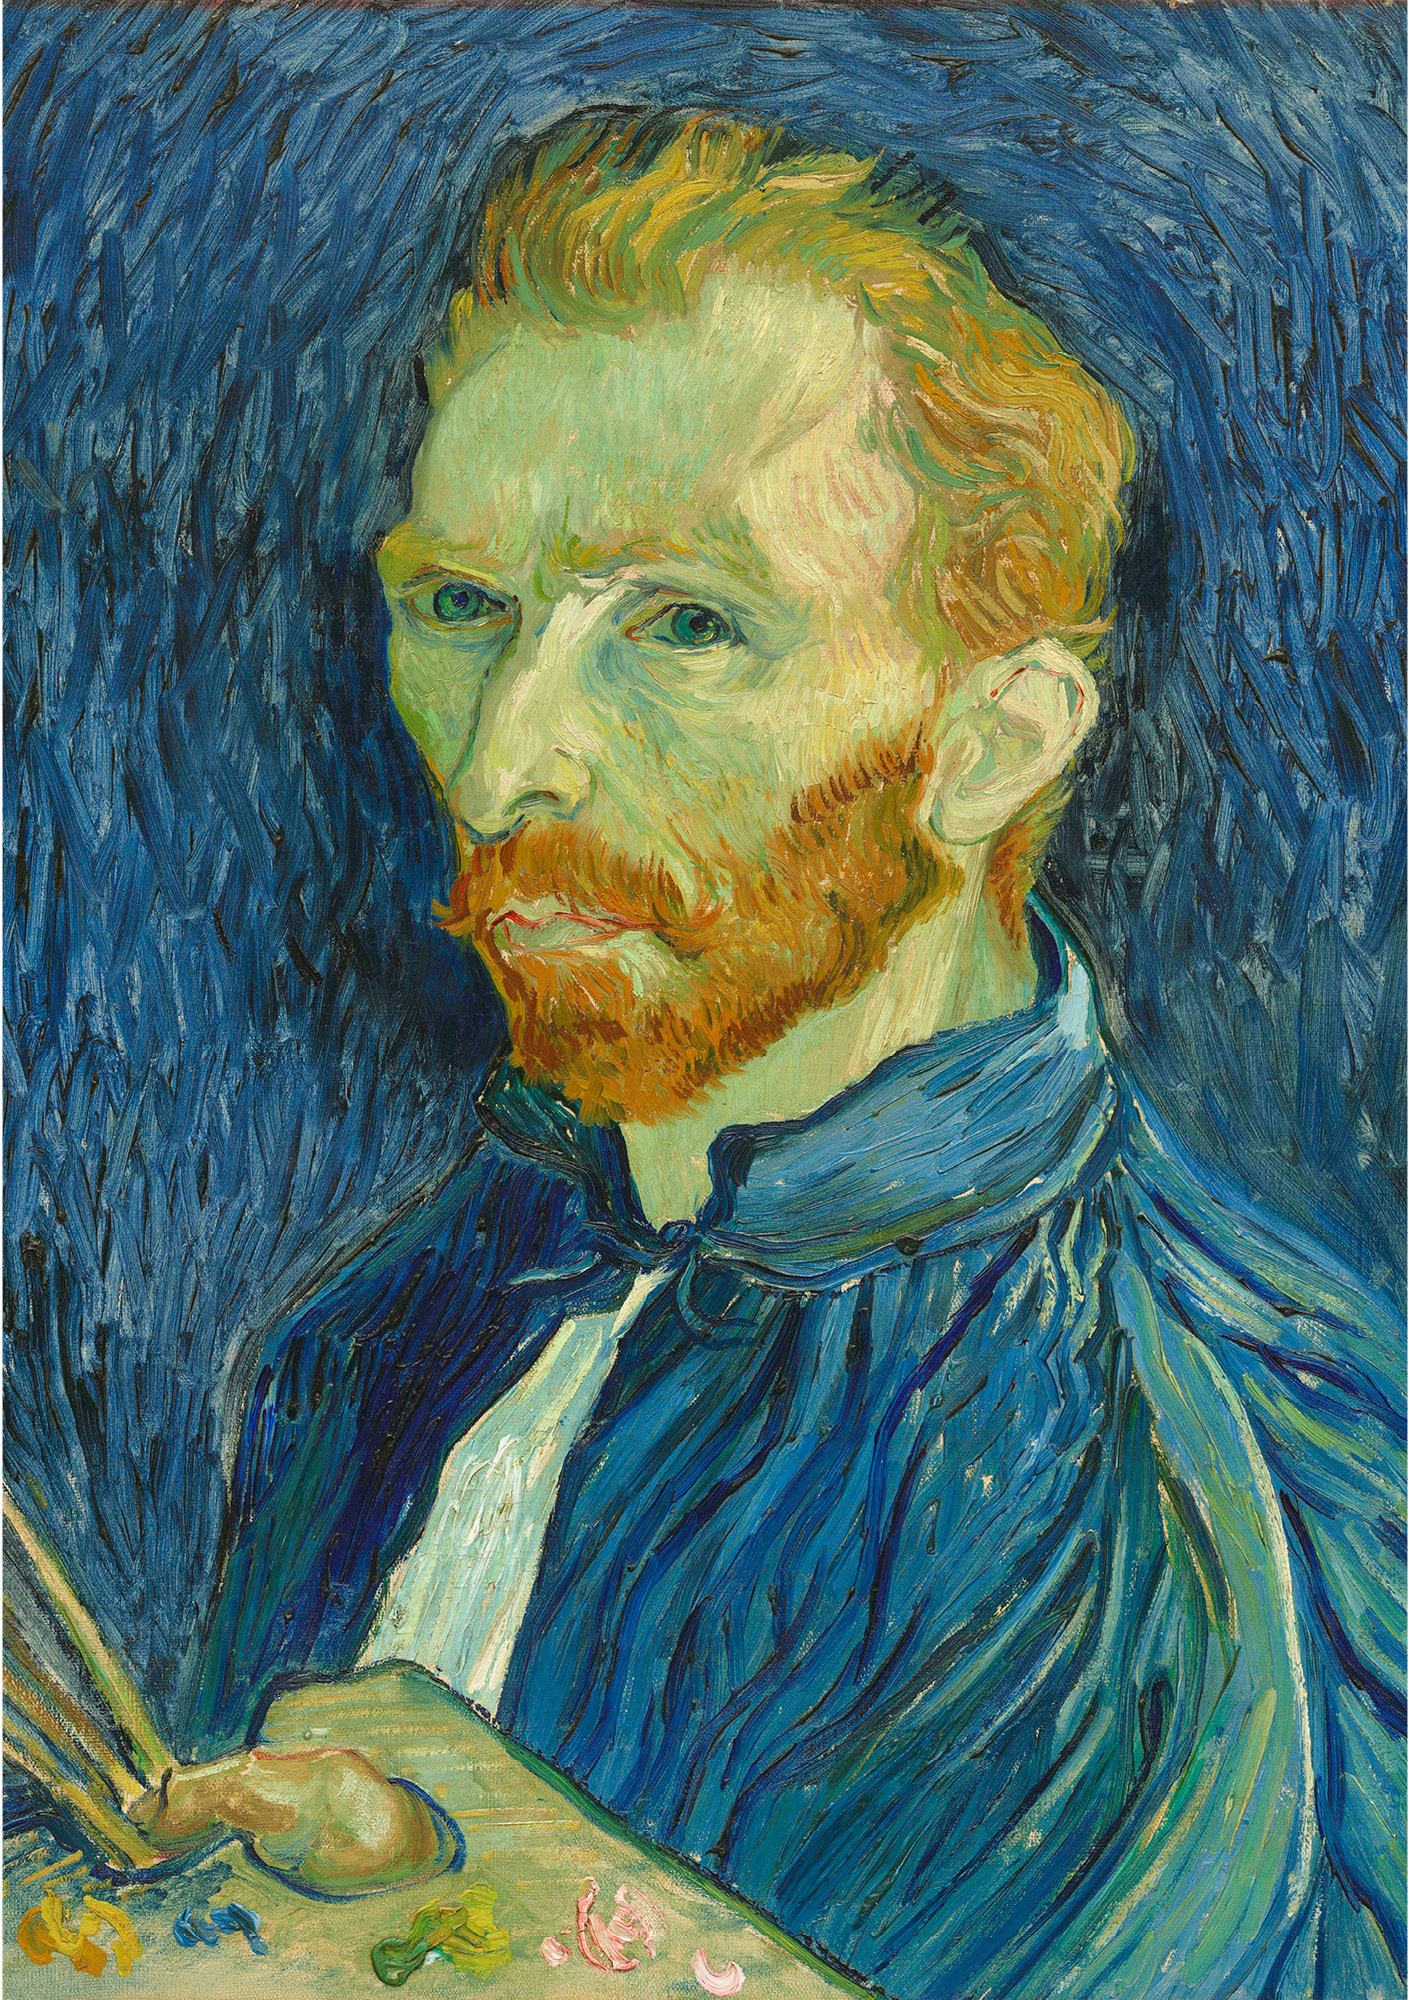 Vincent van Gogh (1853 – 1890), Self-Portrait, 1889, oil paint on canvas, 572mm x 438mm, National Gallery of Art, Collection of Mr. and Mrs. John Hay Whitney